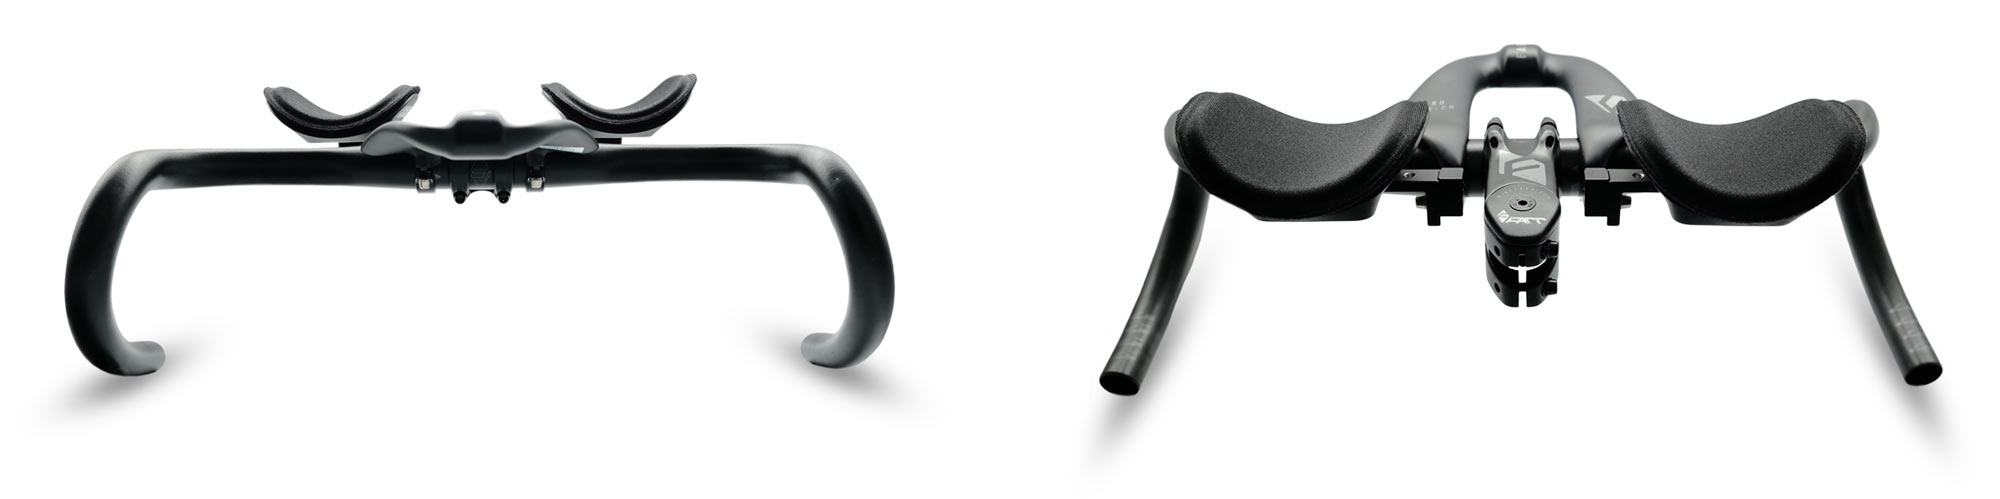 add on aero extension with arm rests for any road or mountain bike handlebar for ultraendurance gravel and mtb races